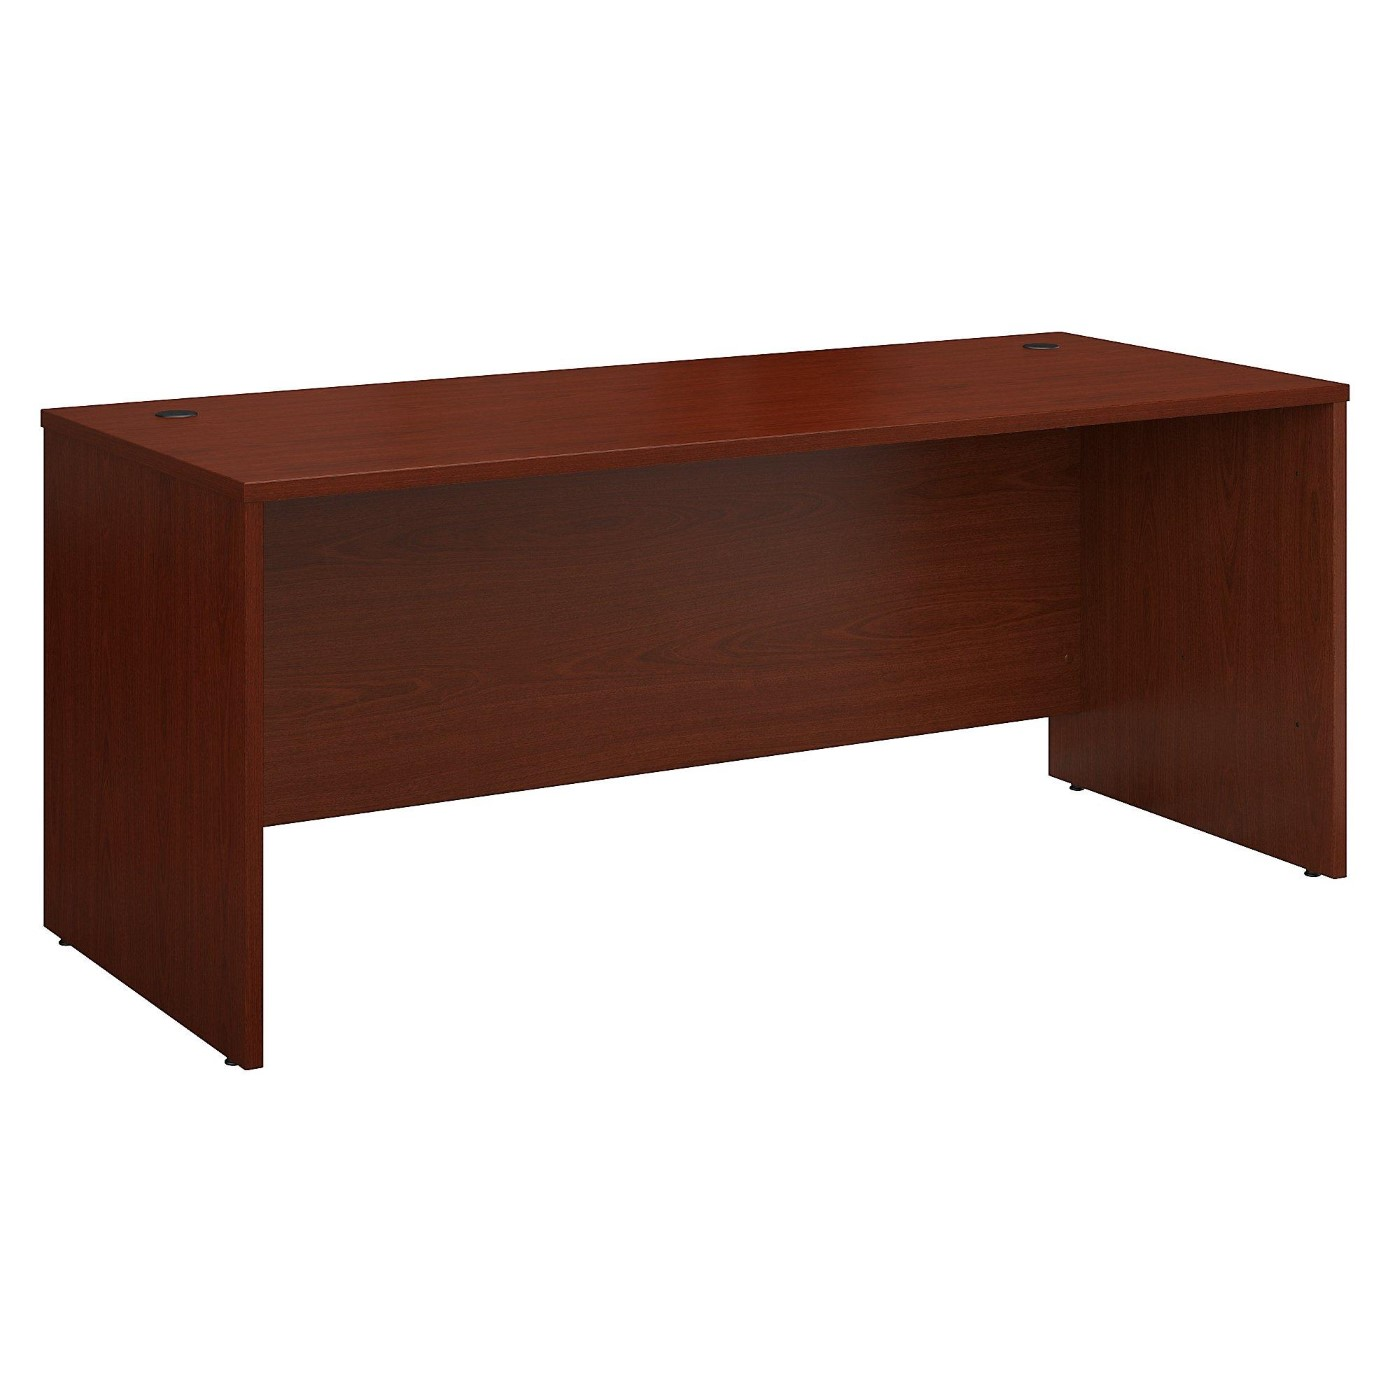 BUSH BUSINESS FURNITURE SERIES C 72W X 30D OFFICE DESK. FREE SHIPPING  VIDEO BELOW.